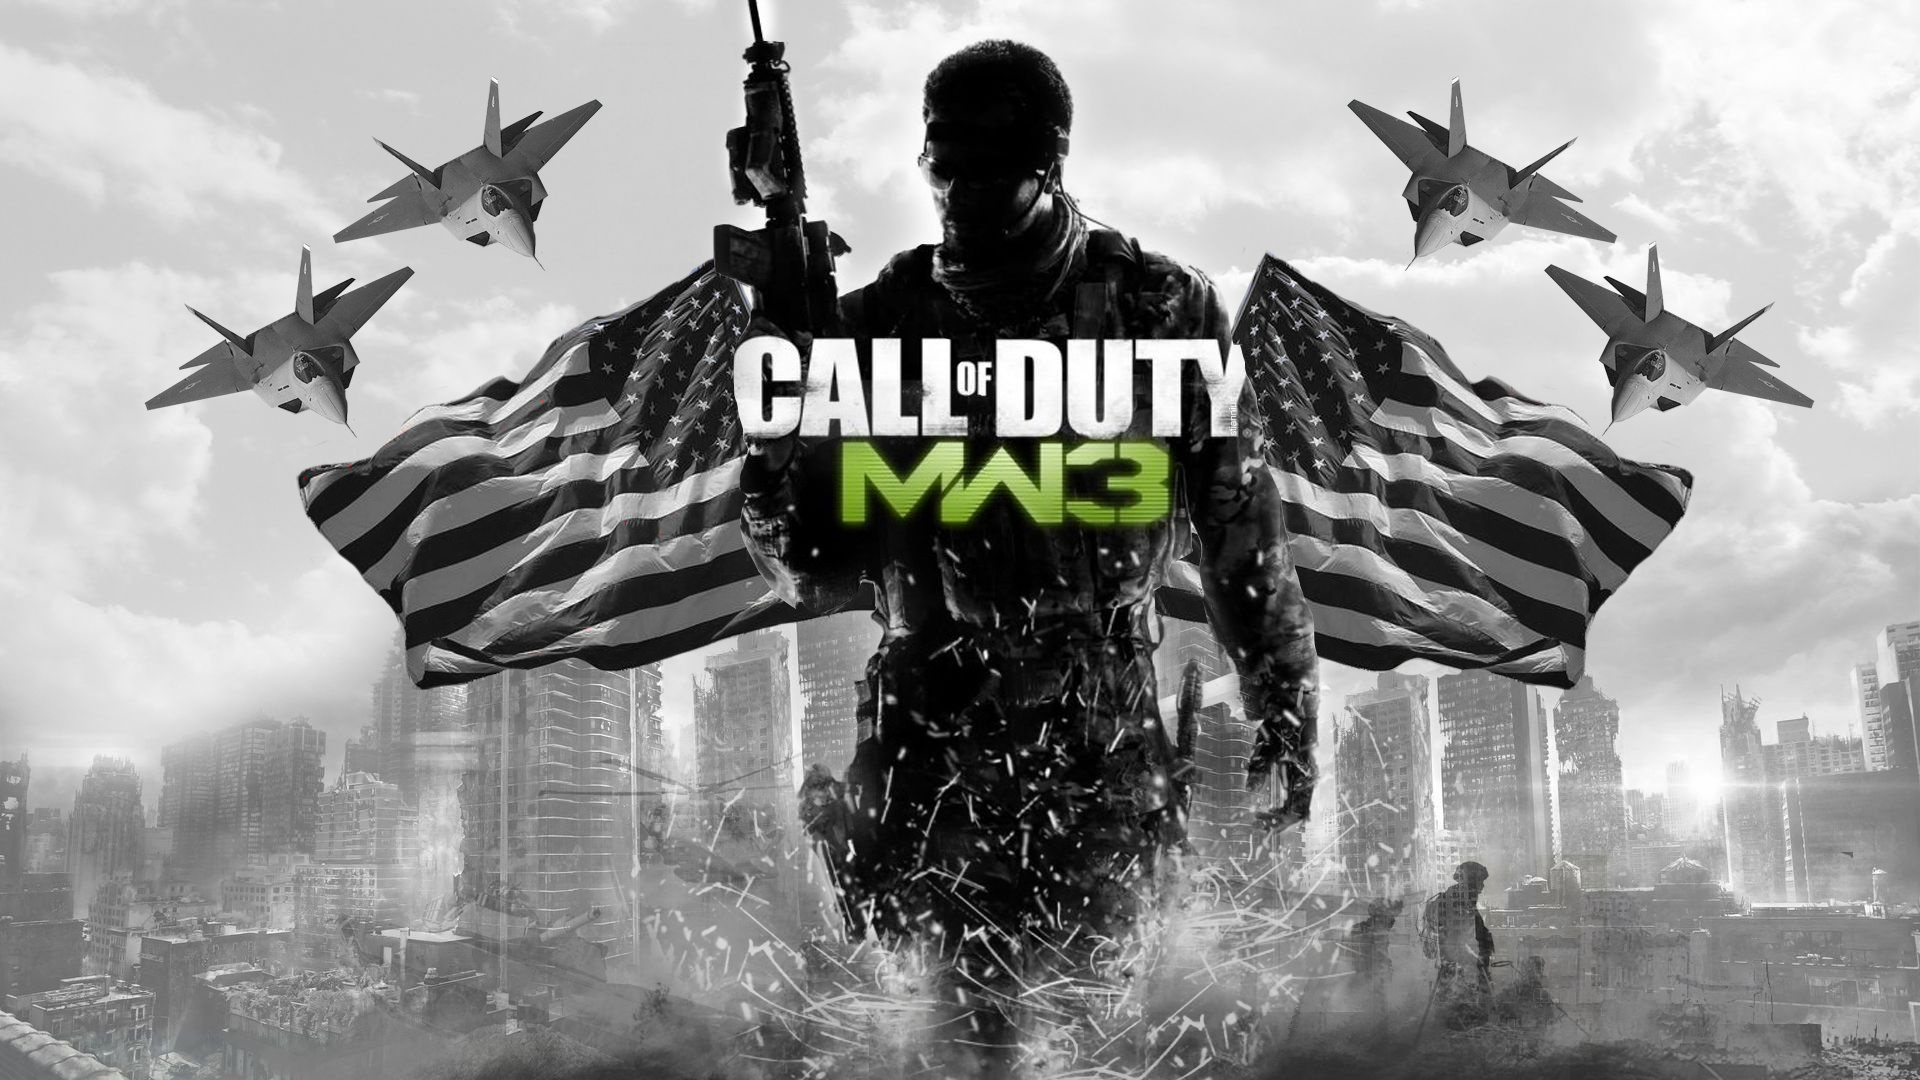 Free Download Call Of Duty Modern Warfare 3 1920x1080 For Your